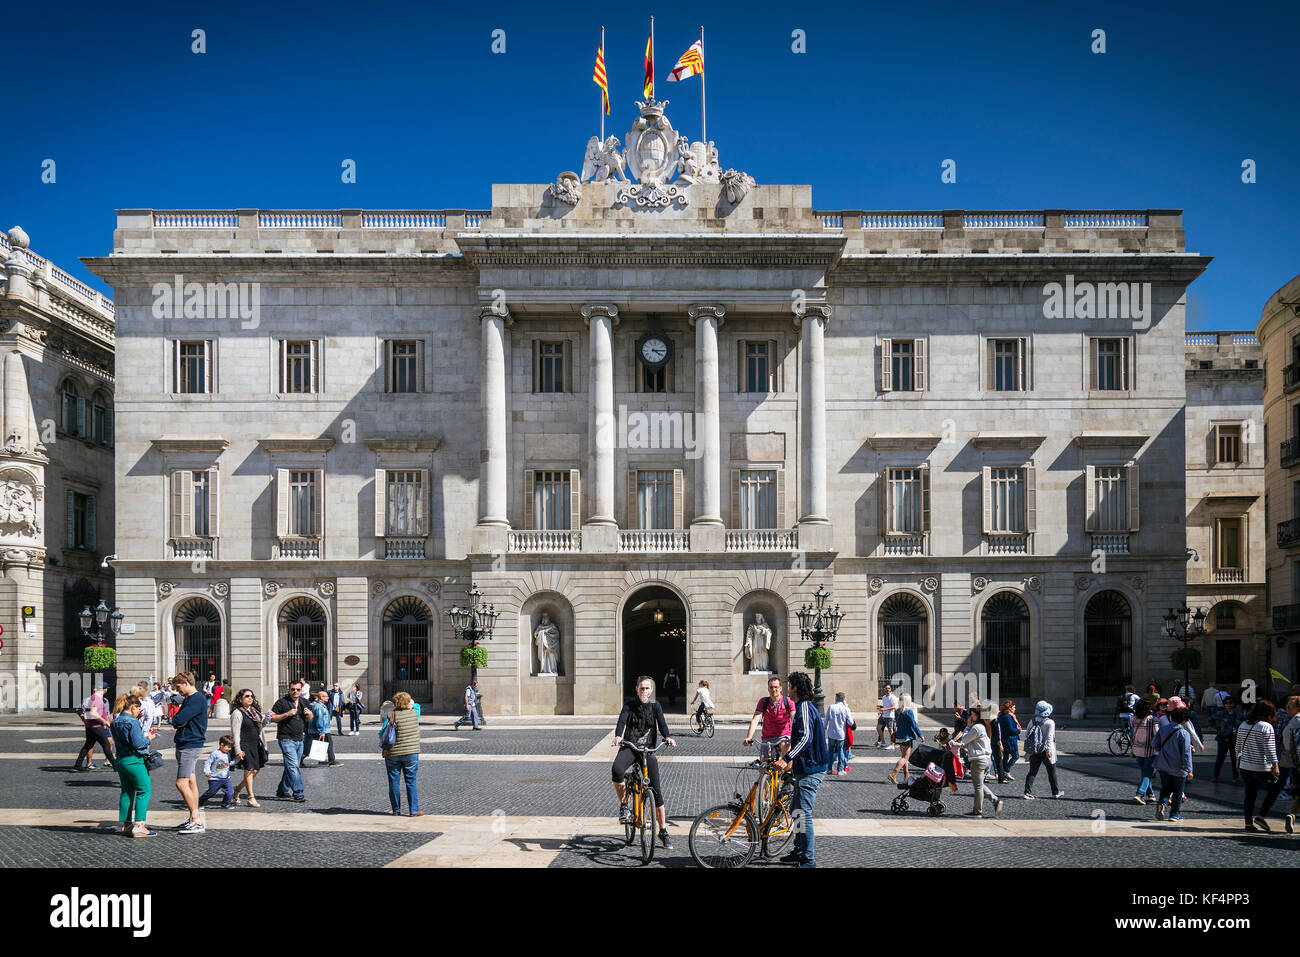 town hall landmark government building at sant jaume square in old town of barcelona spain - Stock Image